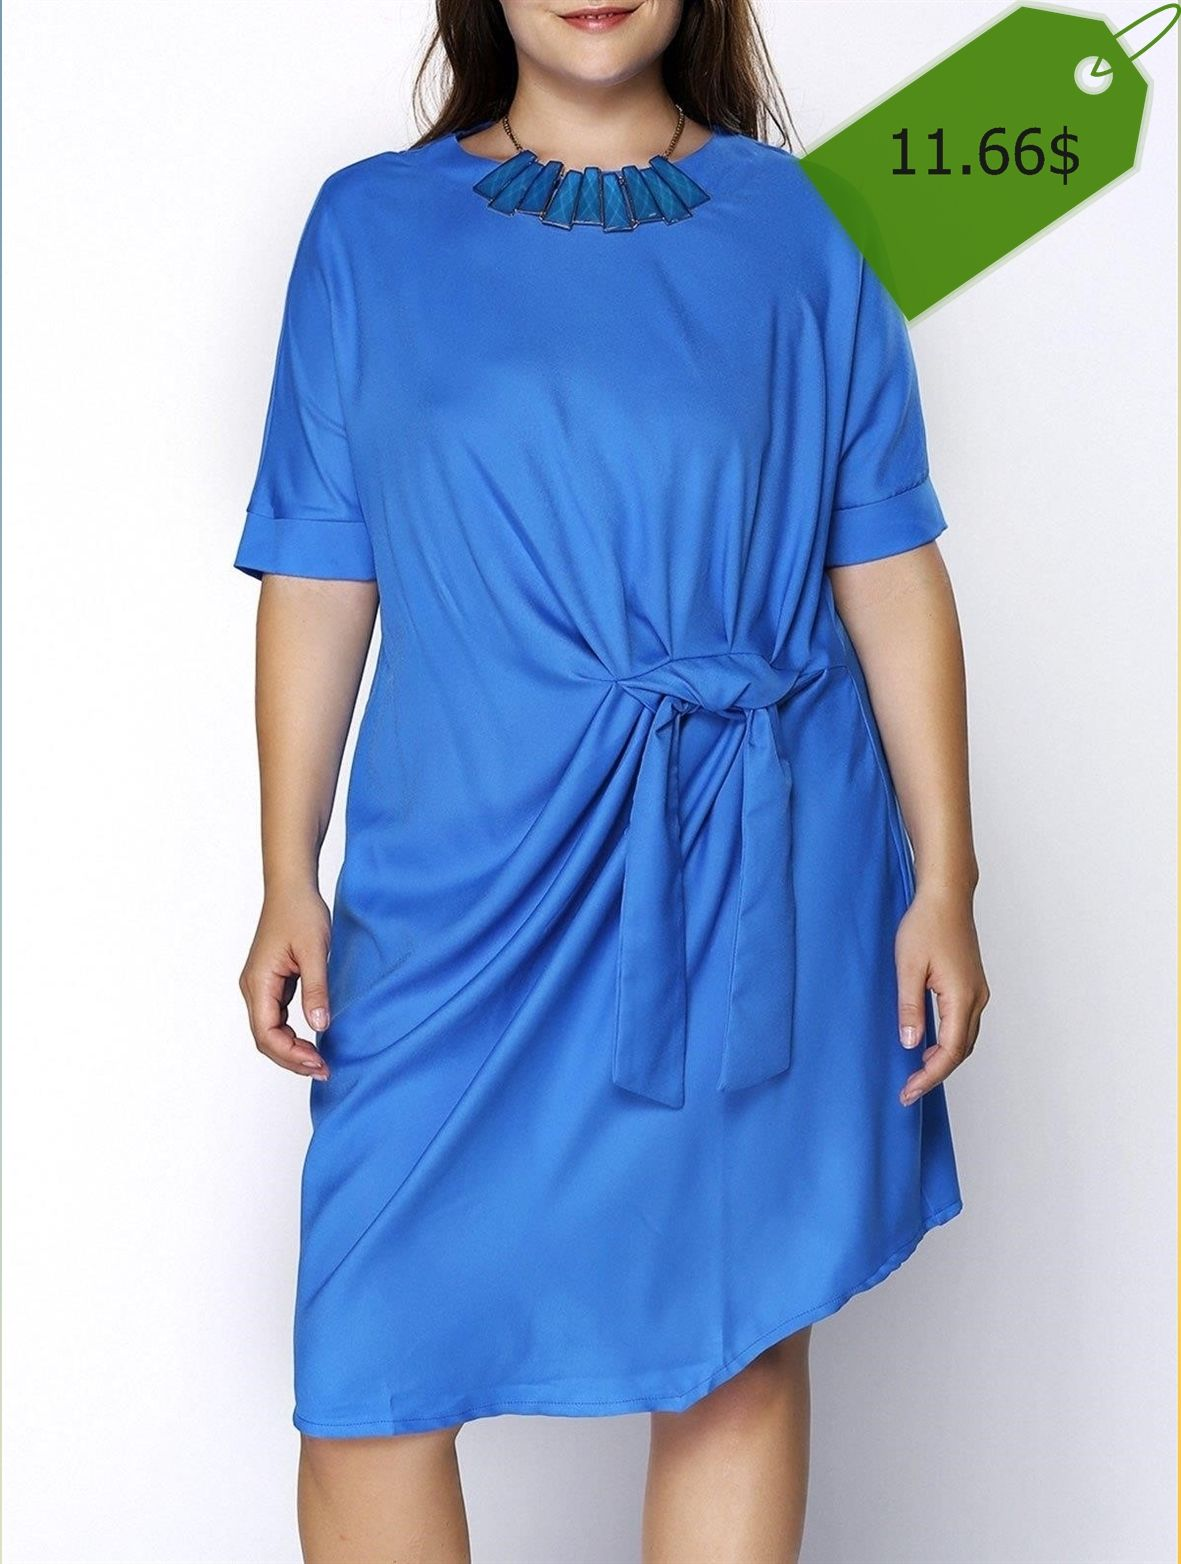 Chic Round Collar Plus Size Knotted Solid Color Dress For Women